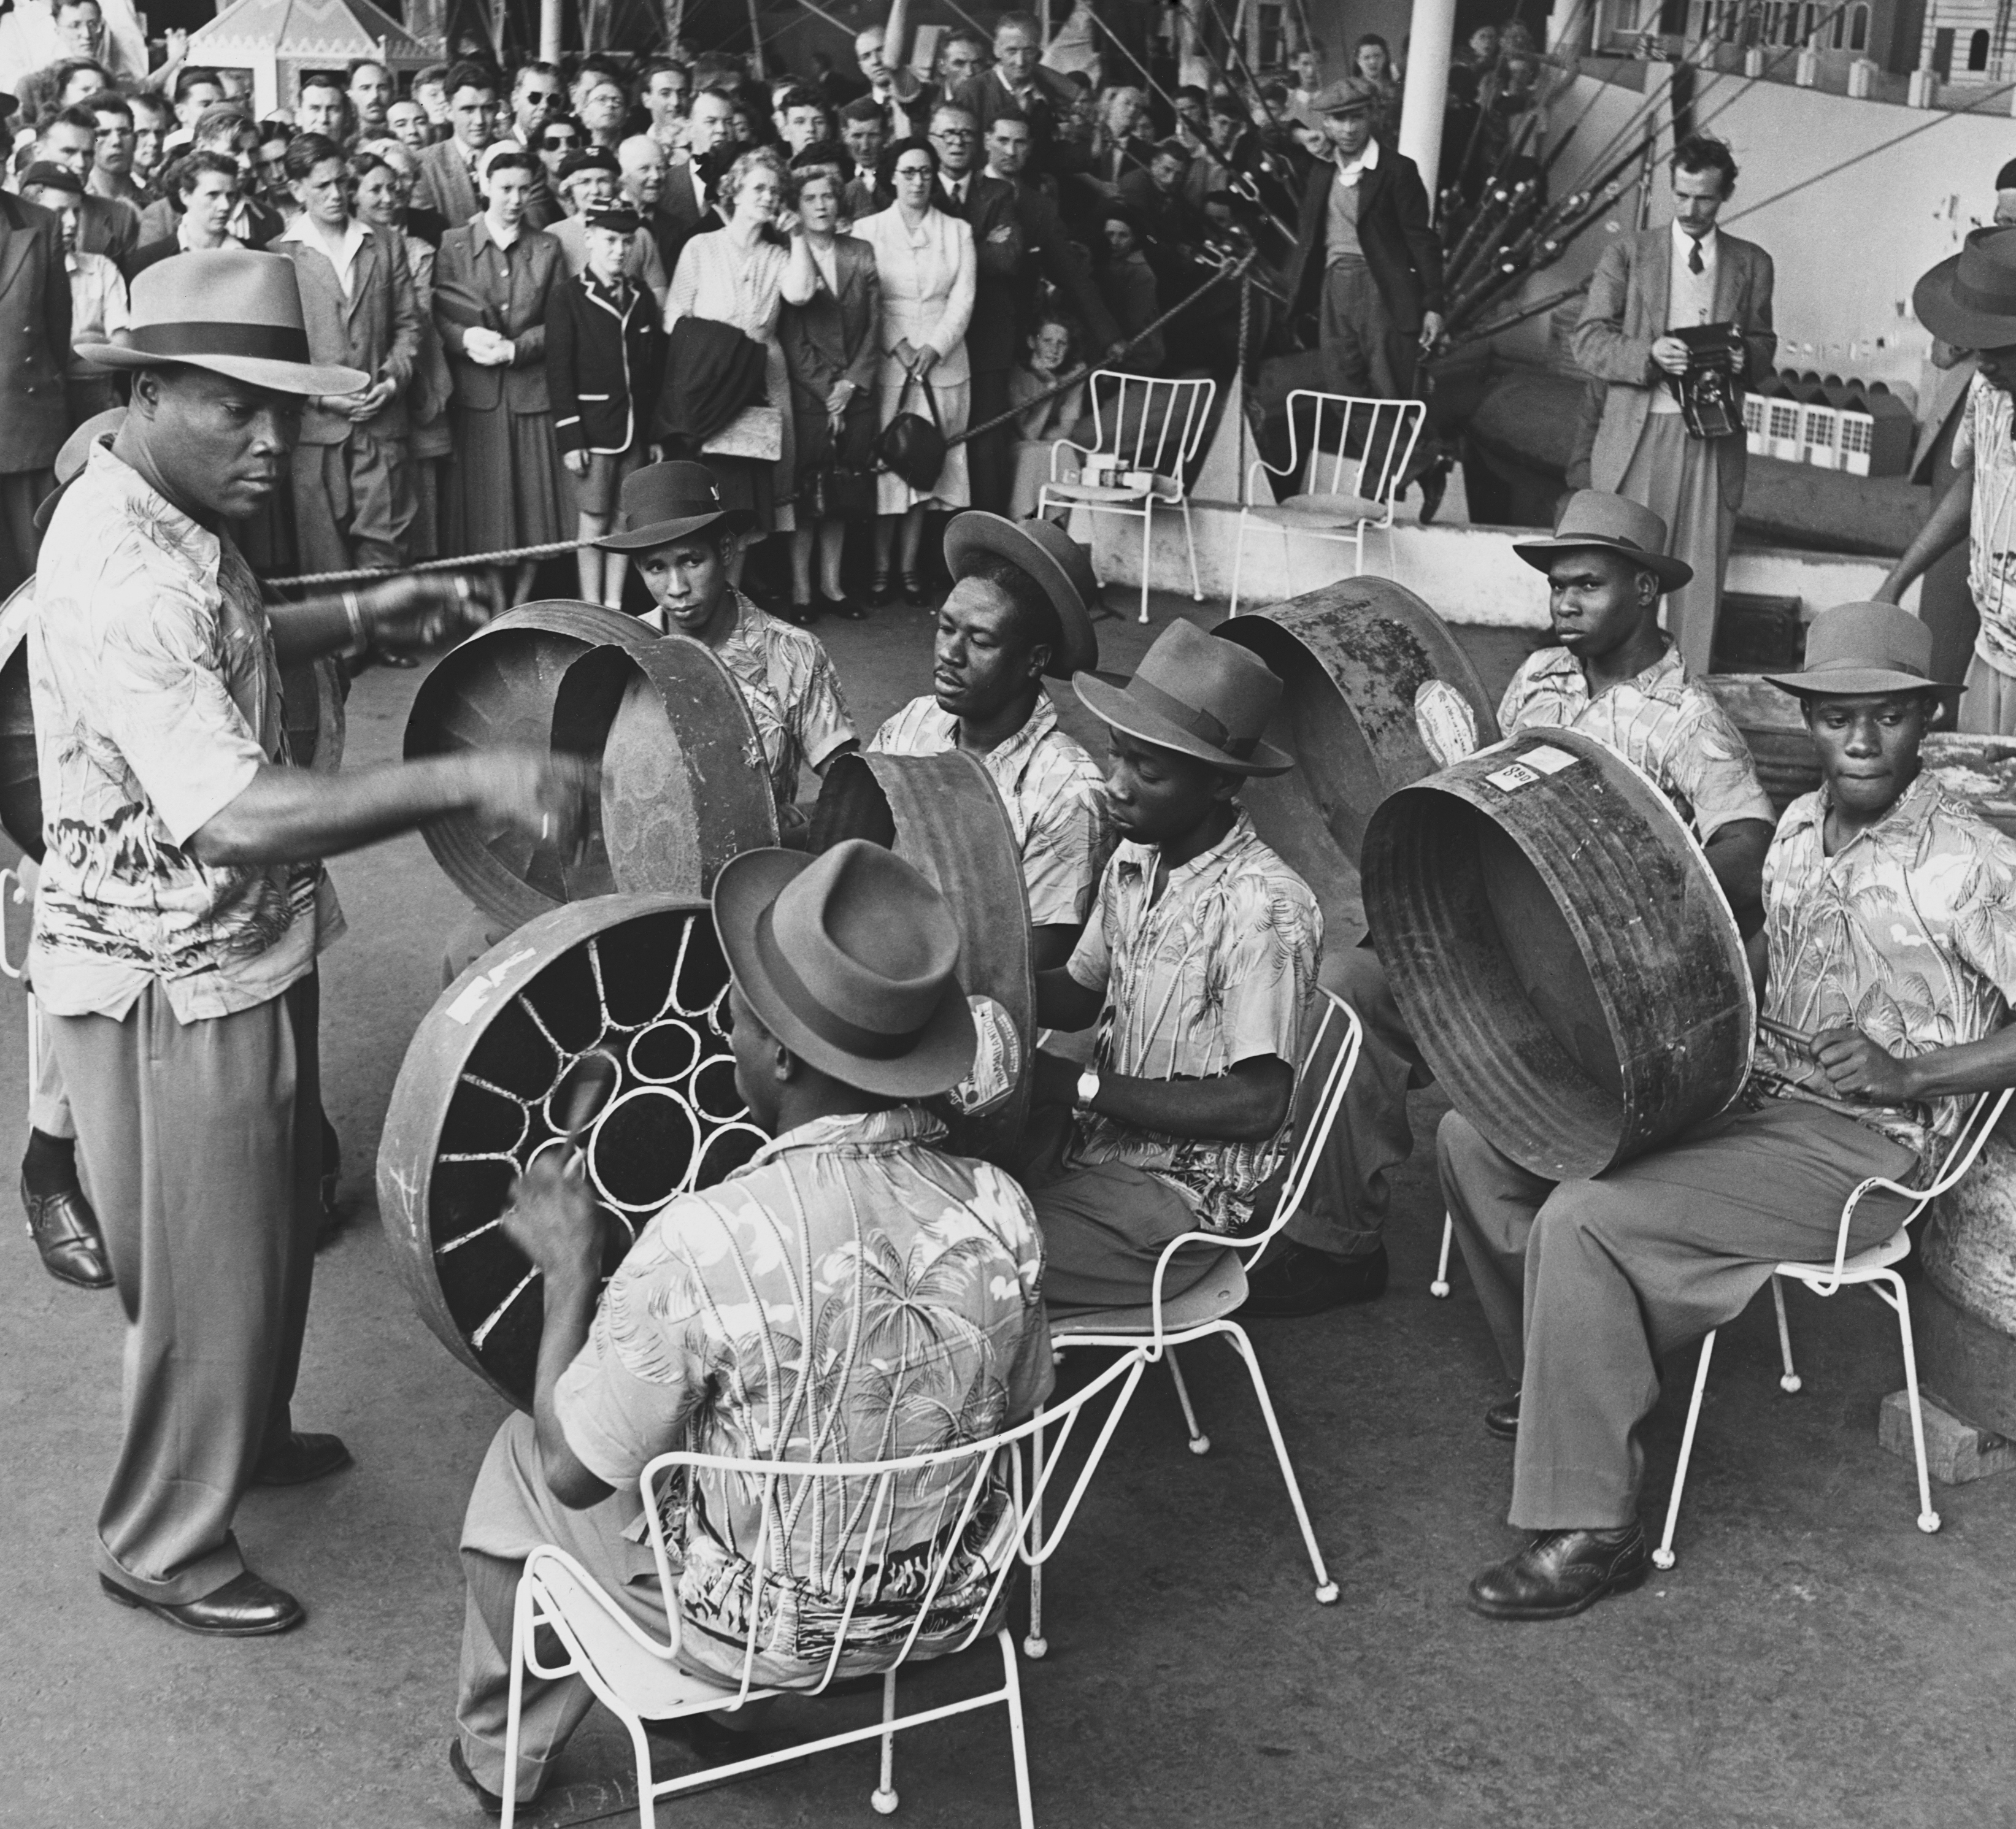 The Trinidad All Steel Percussion Orchestra, gives its first public performance in London at the South Bank under the leadership of their Manager, Joseph Griffith, a Lieutenant in the St. Lucia Police. (Photo by © Hulton-Deutsch Collection/CORBIS/Corbis via Getty Images)